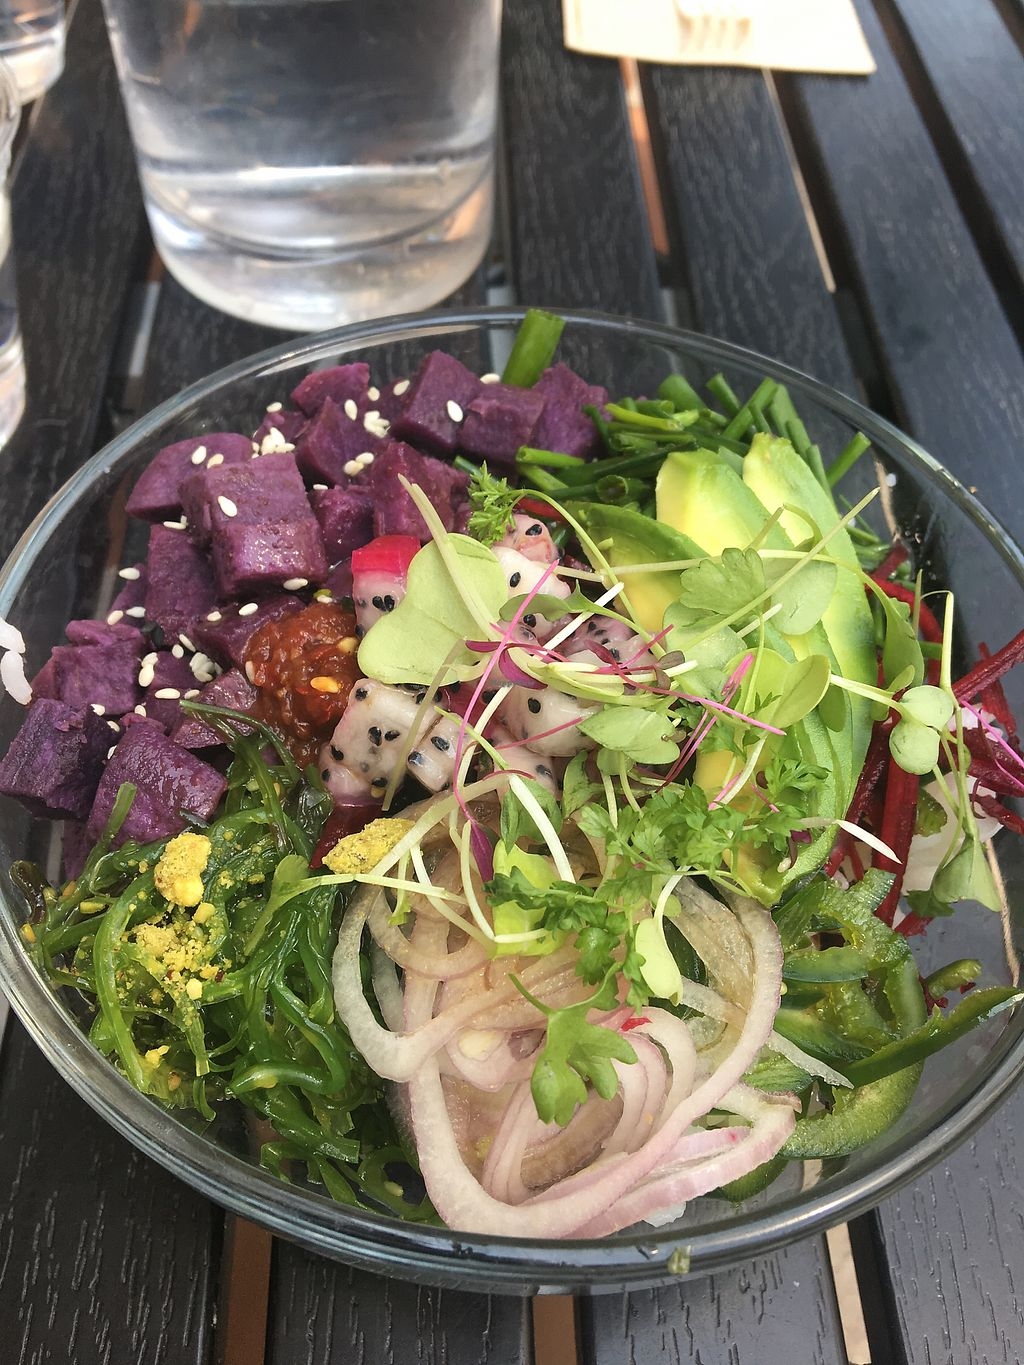 """Photo of Raleigh Raw Juice Bar & Cafe  by <a href=""""/members/profile/EmilySuttonTaylor"""">EmilySuttonTaylor</a> <br/>The hustle vegan poke bowl  <br/> September 4, 2017  - <a href='/contact/abuse/image/93603/300877'>Report</a>"""